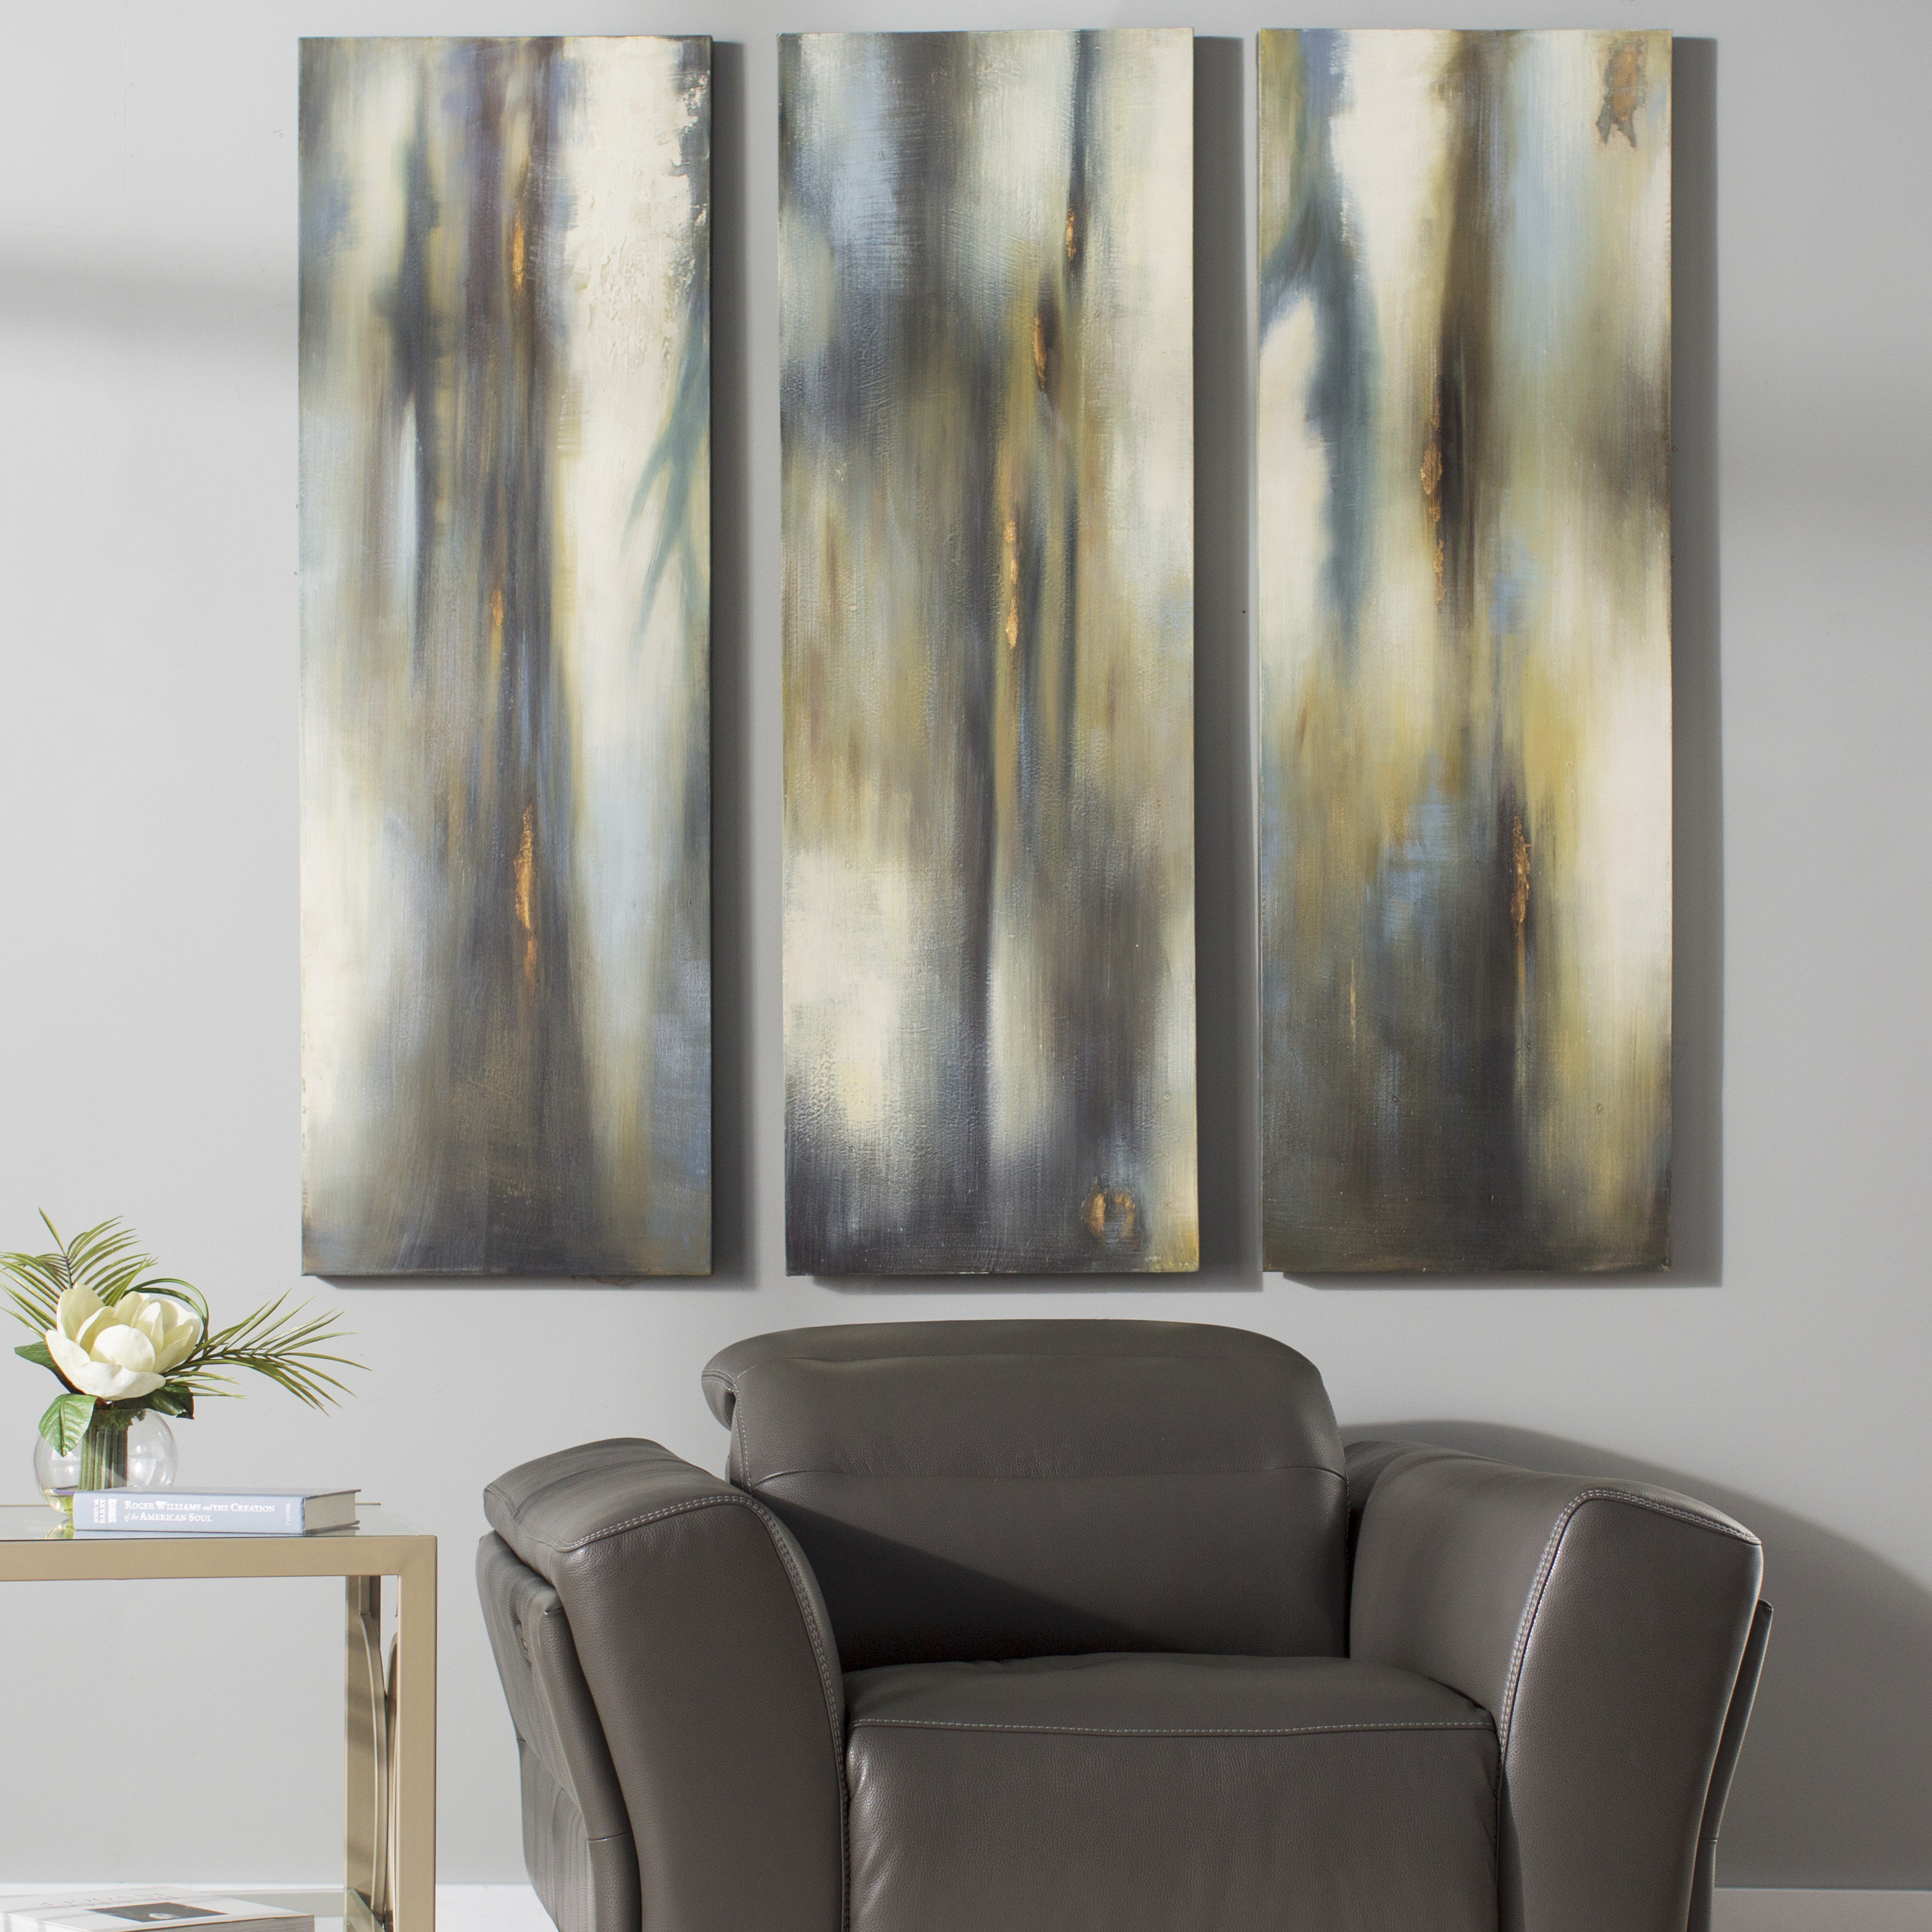 Best And Newest Brayden Studio 'moonglow Modern' 3 Piece Painting On Canvas Set For 3 Piece Wall Decor Sets By Wrought Studio (View 8 of 20)